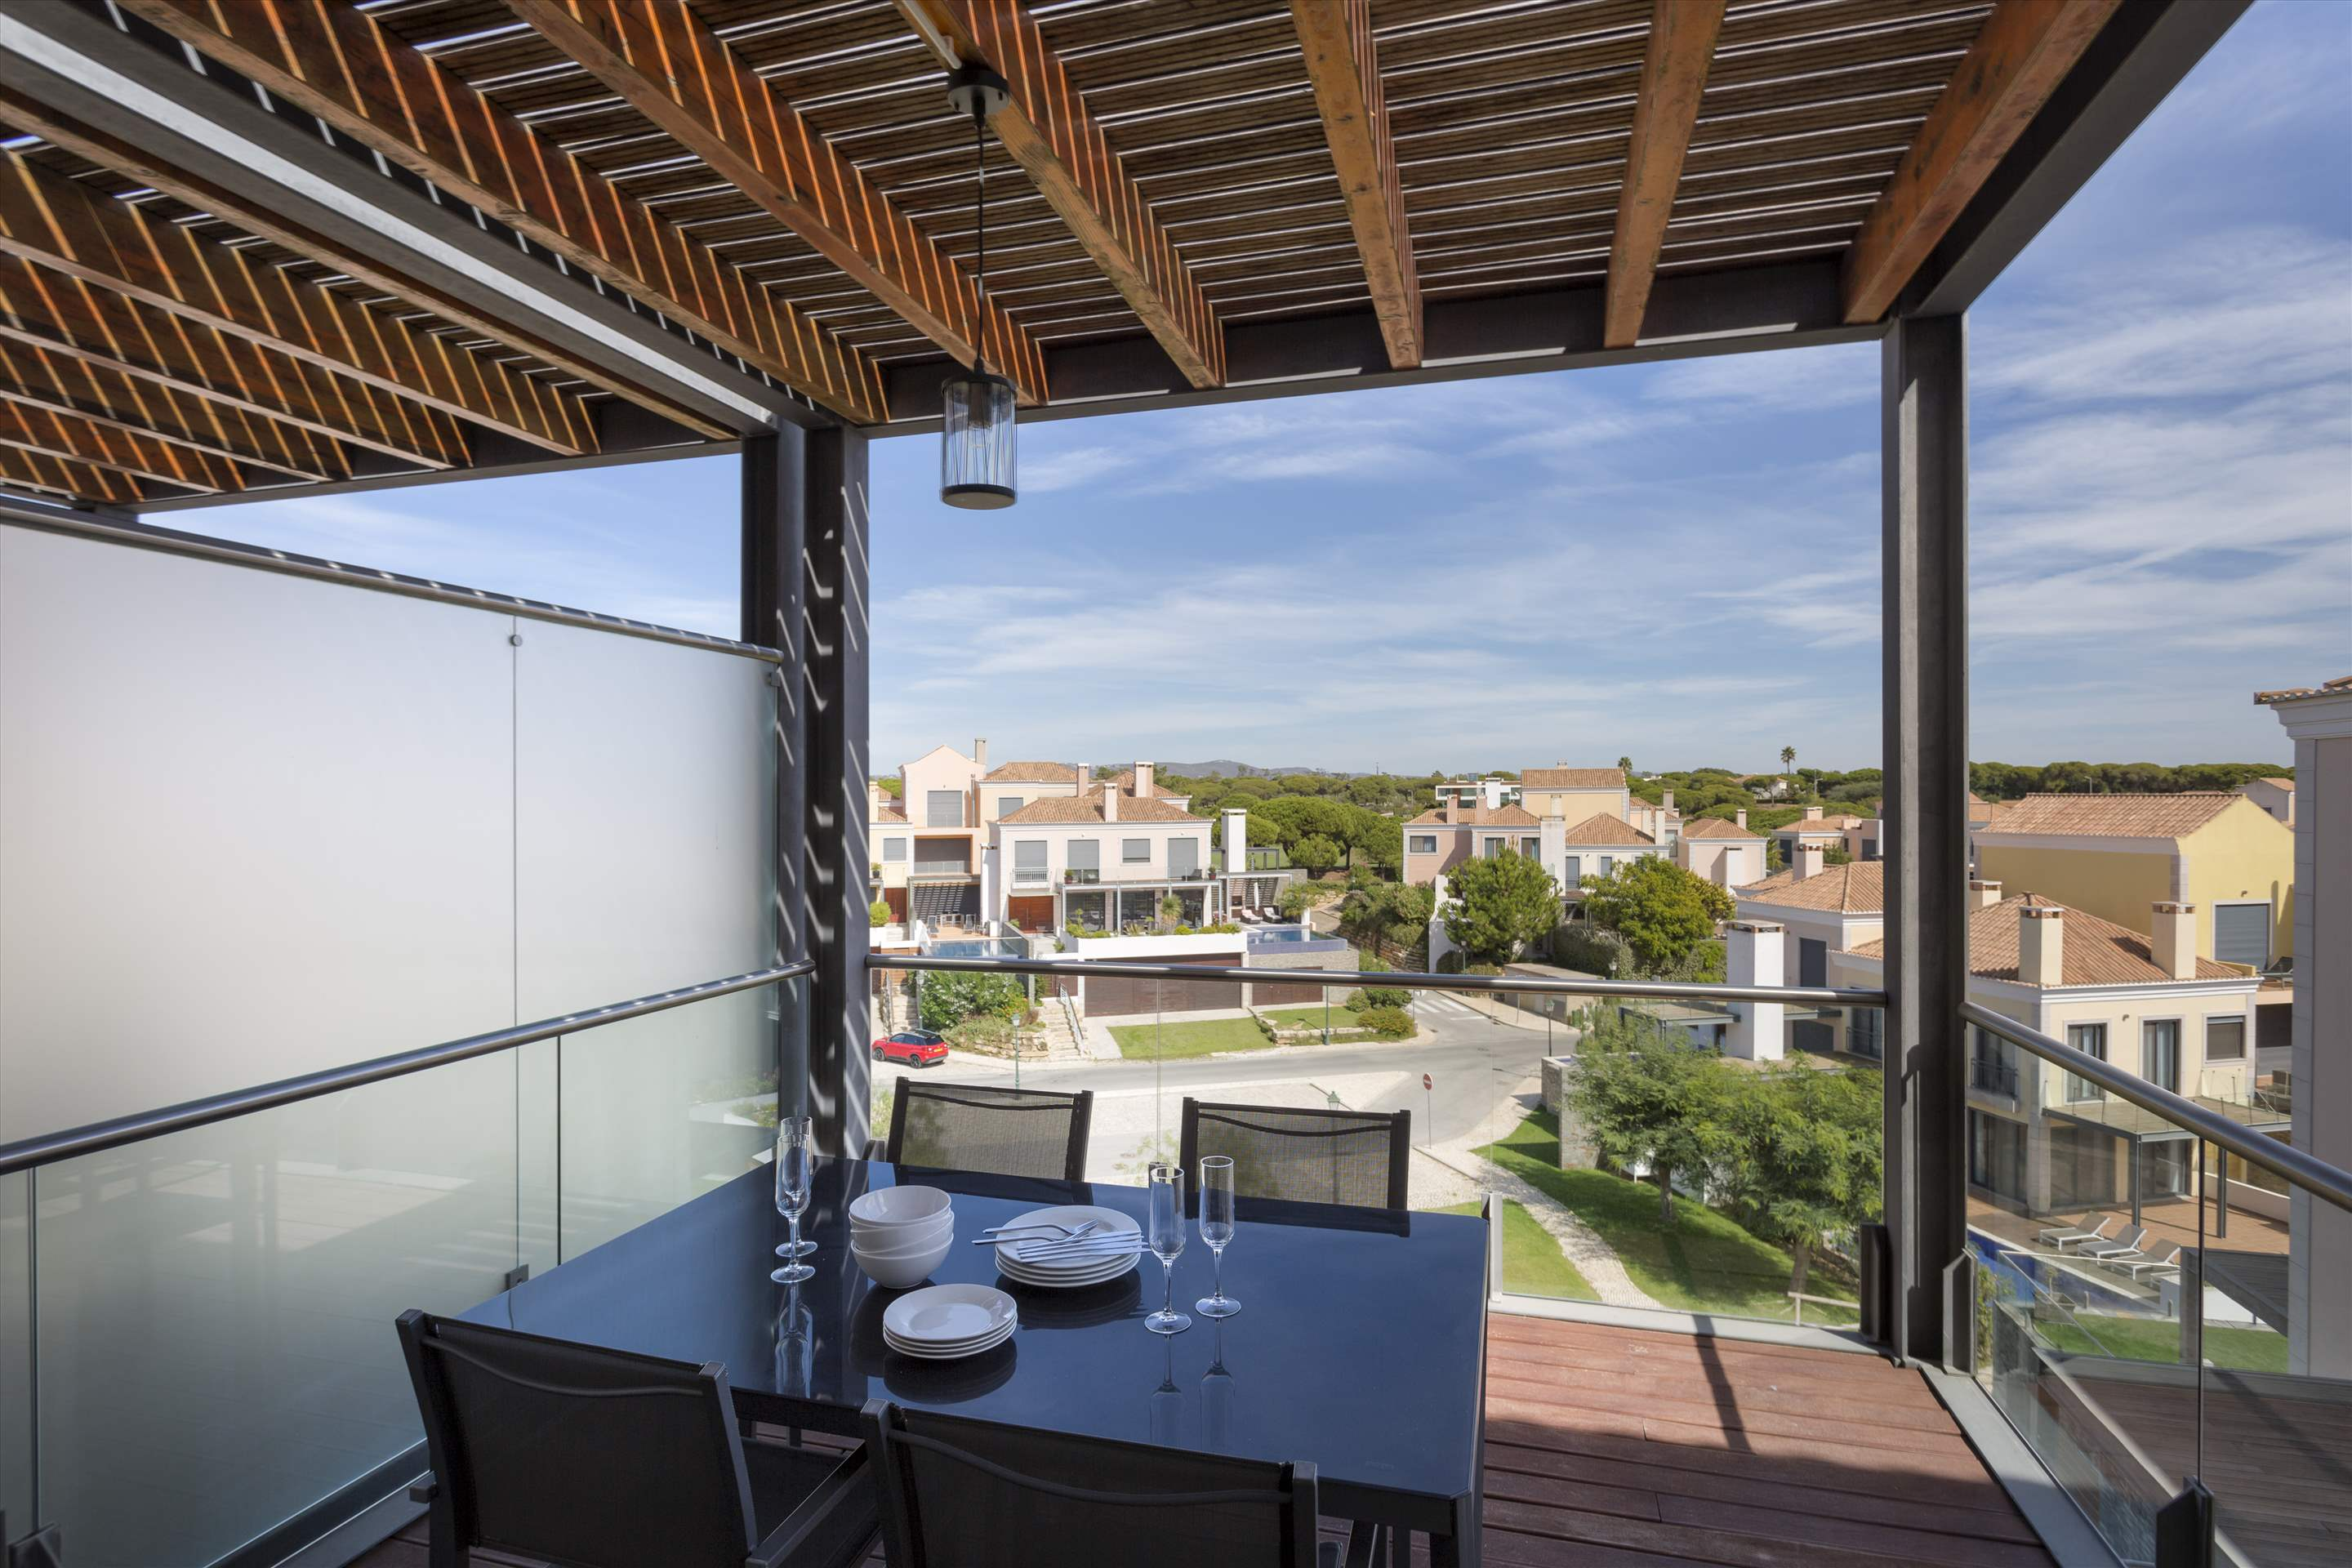 Apartment Rosie, 2 bedroom apartment in Vale do Lobo, Algarve Photo #3